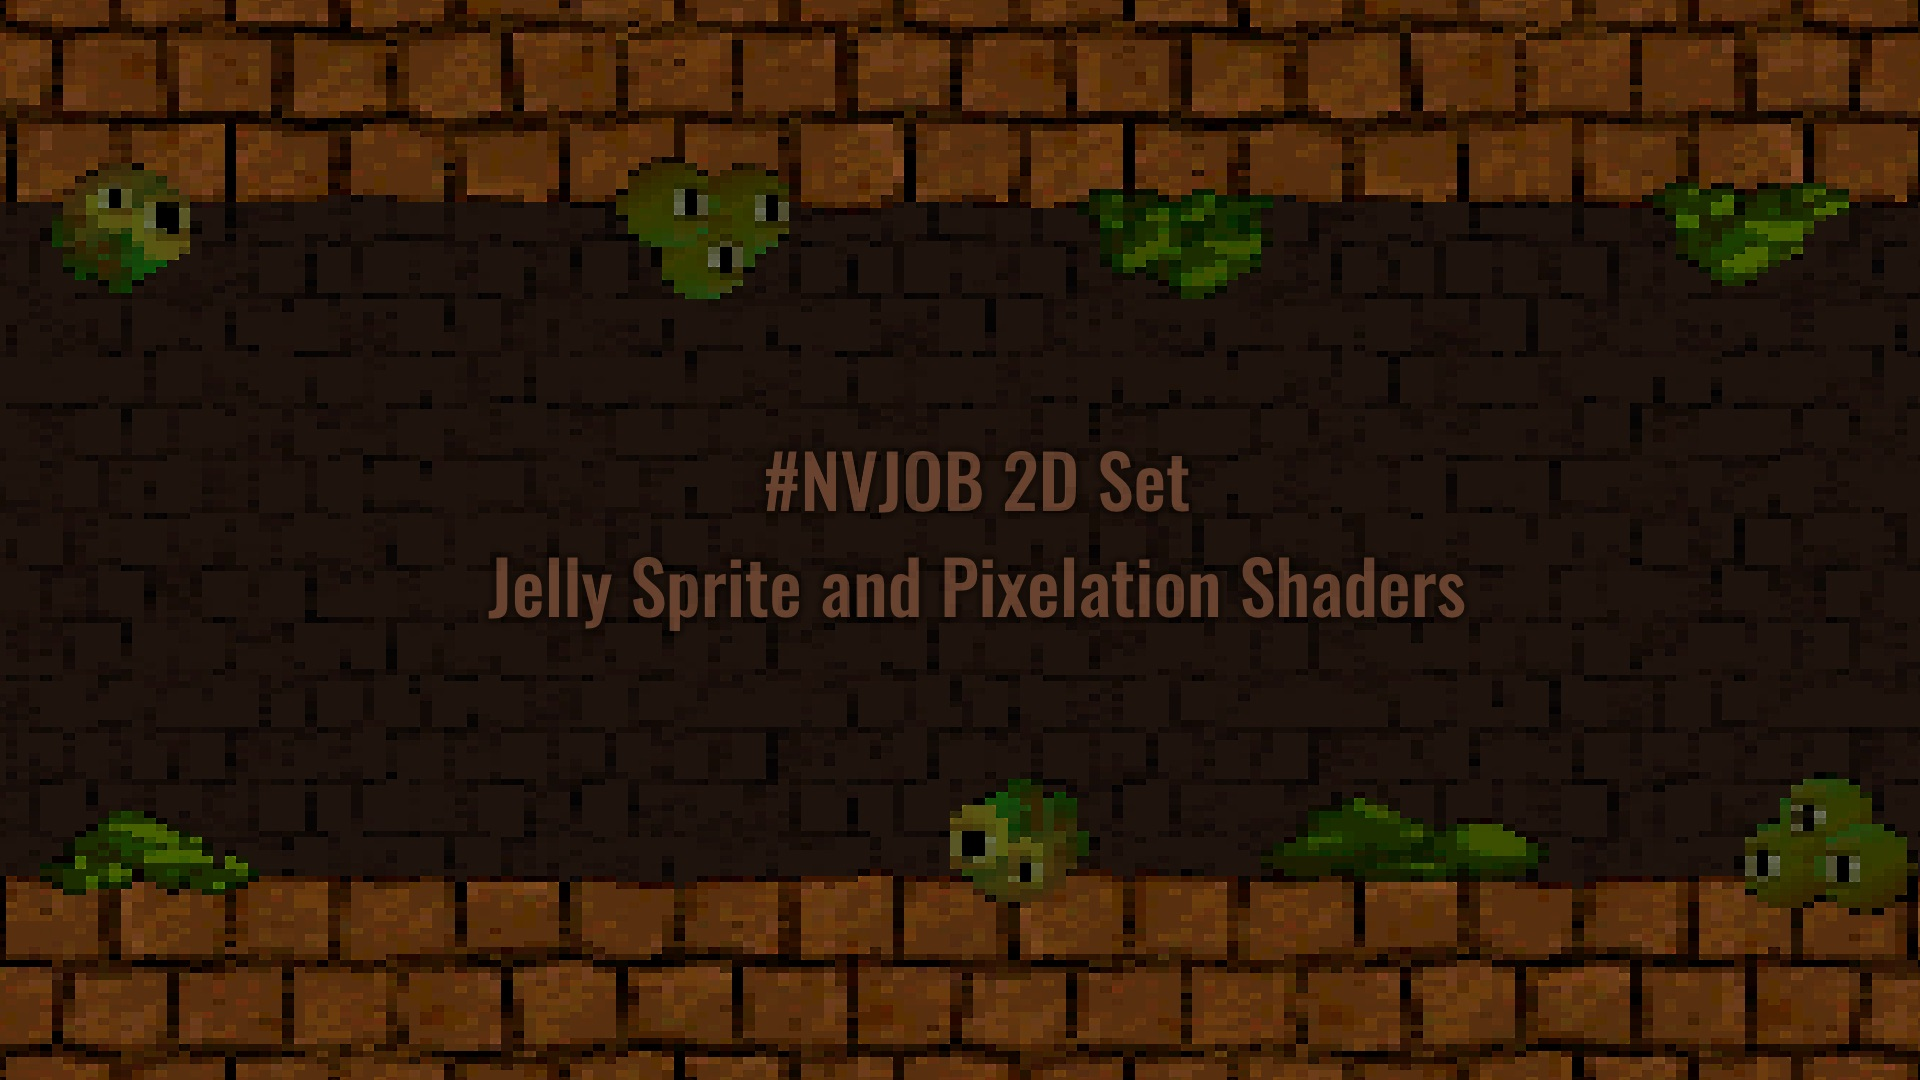 #NVJOB 2D Set (Jelly Sprite and Pixelation Shaders)